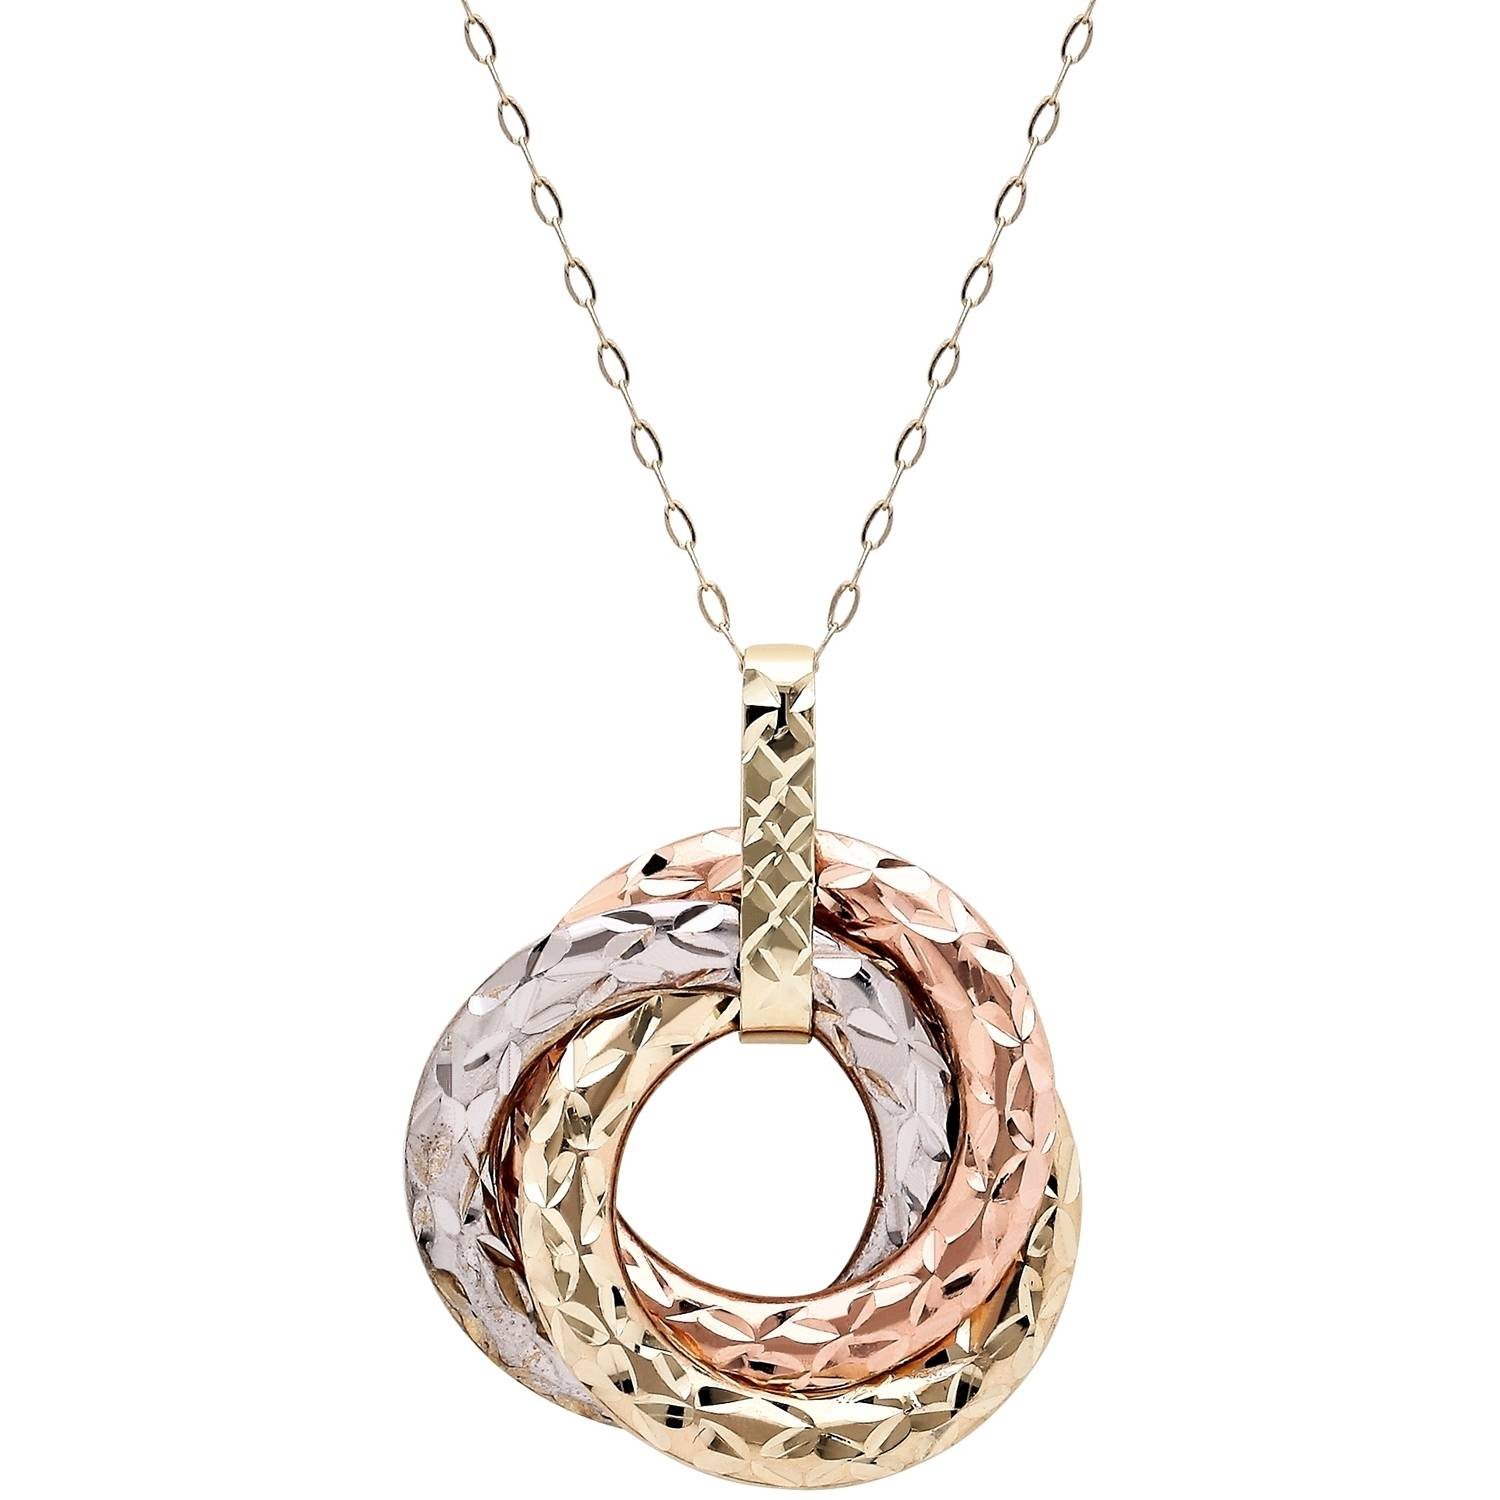 Simply Gold 10kt Yellow, White and Pink Gold Triple Open Circle Pendant by Richline Group Inc